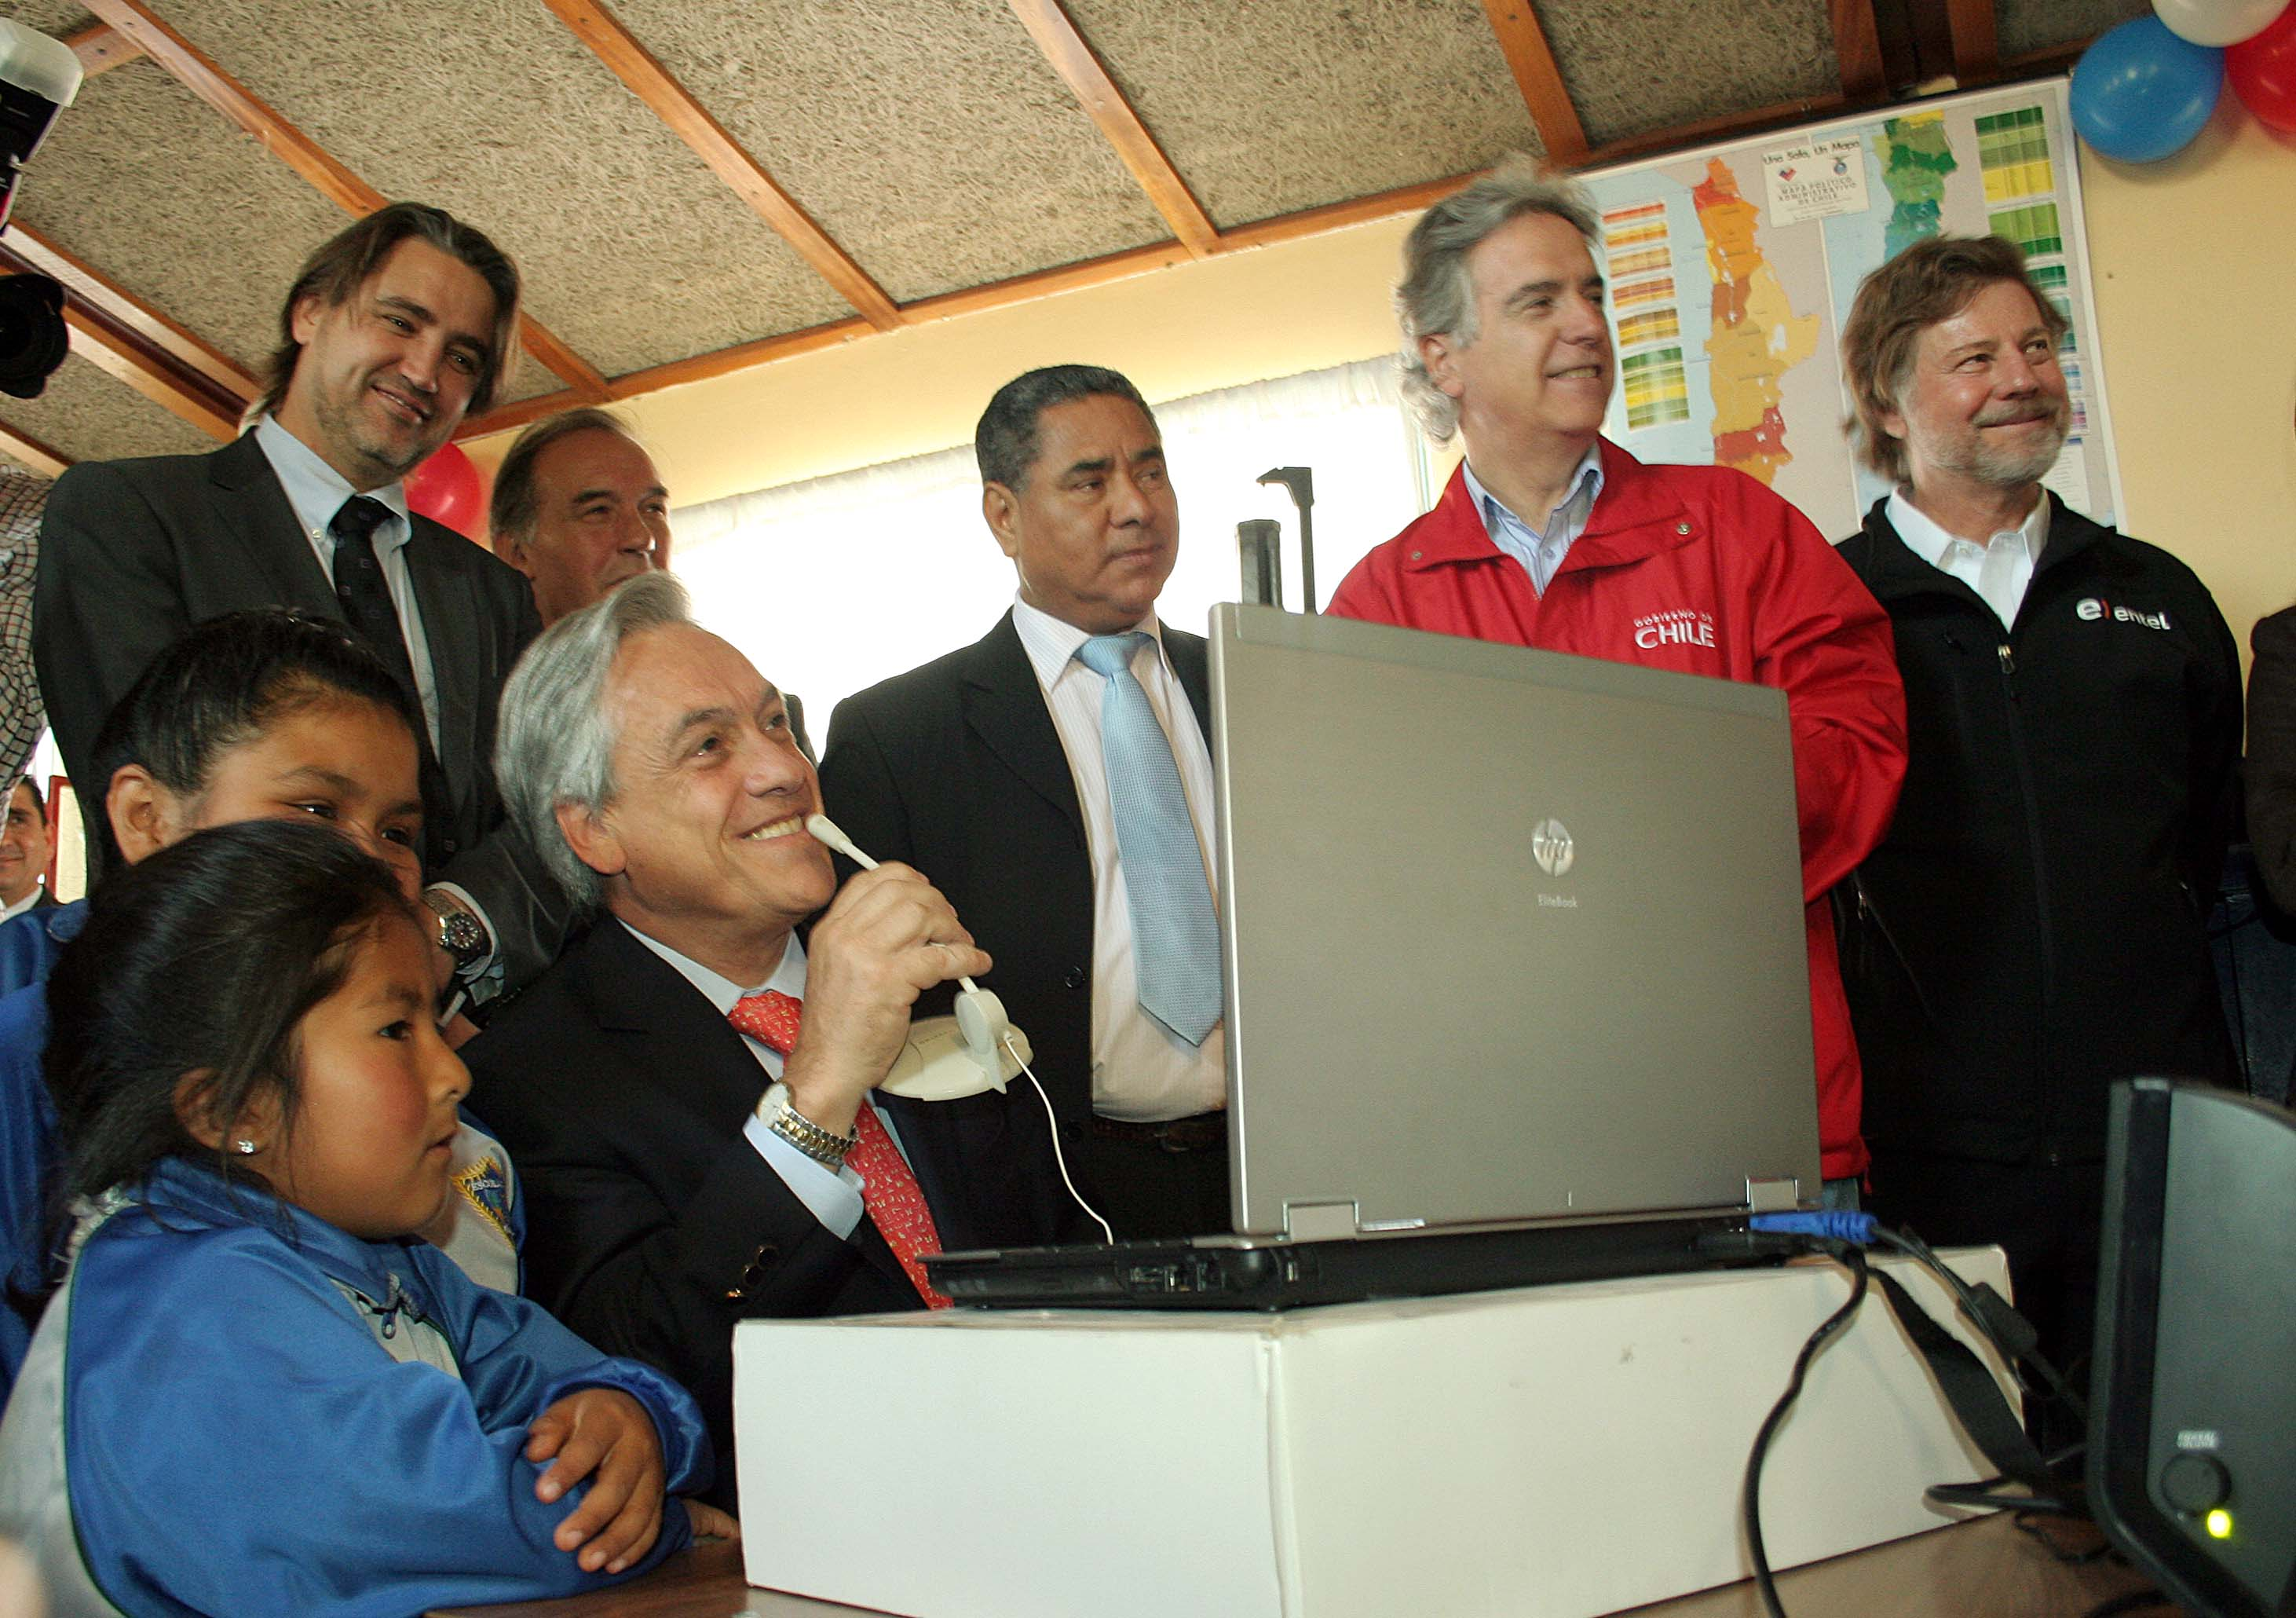 Photo 3: Sebastian Piñera, President of Chile, using broadband at rural school